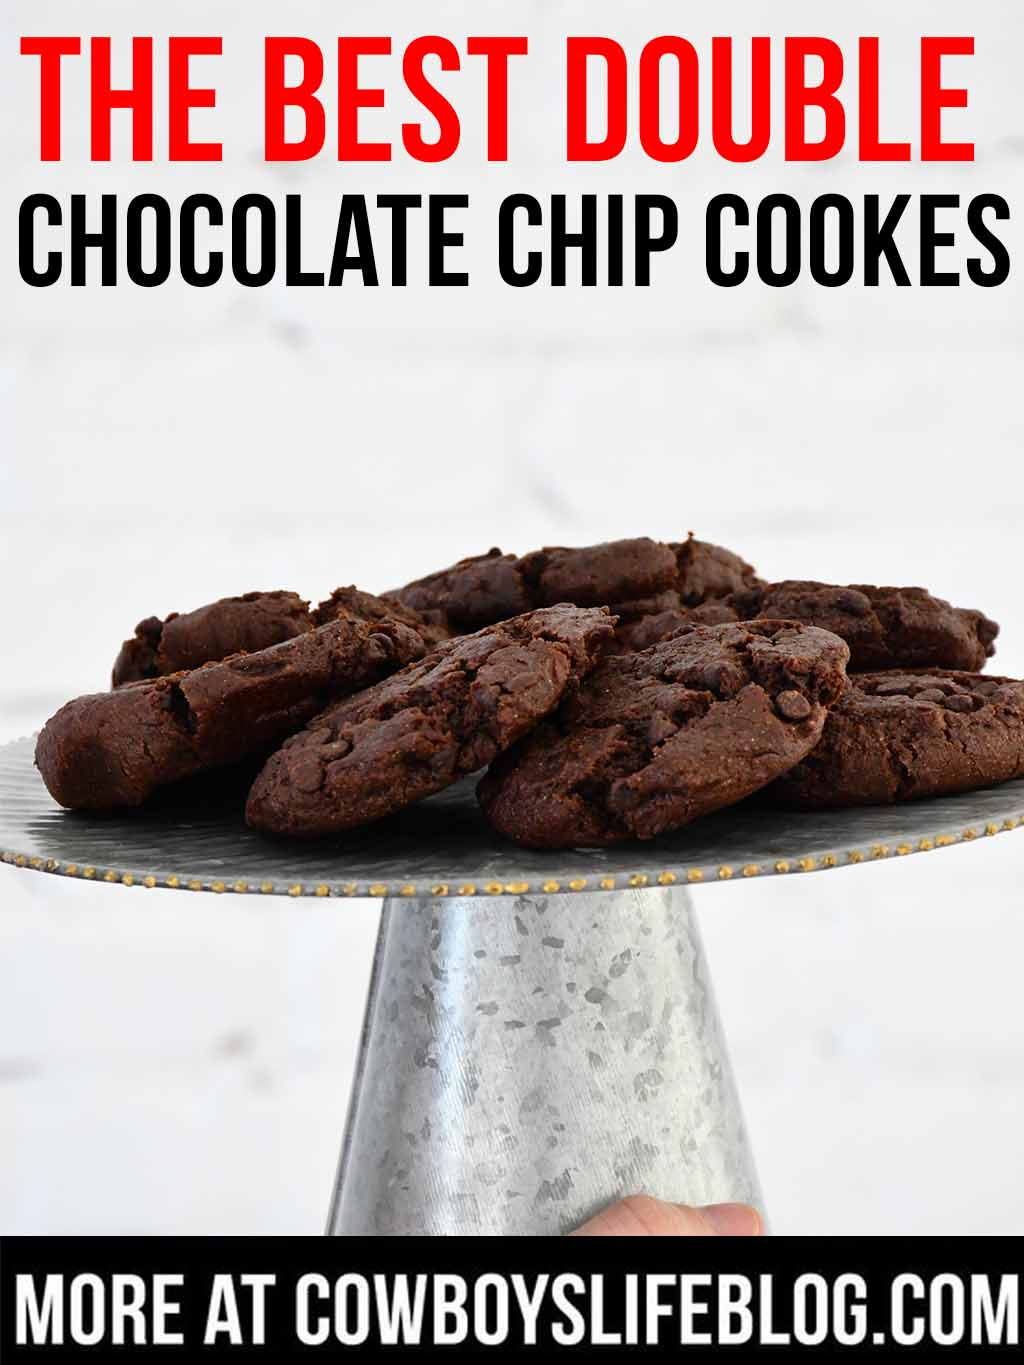 The Best Double Chocolate Chip Cookies